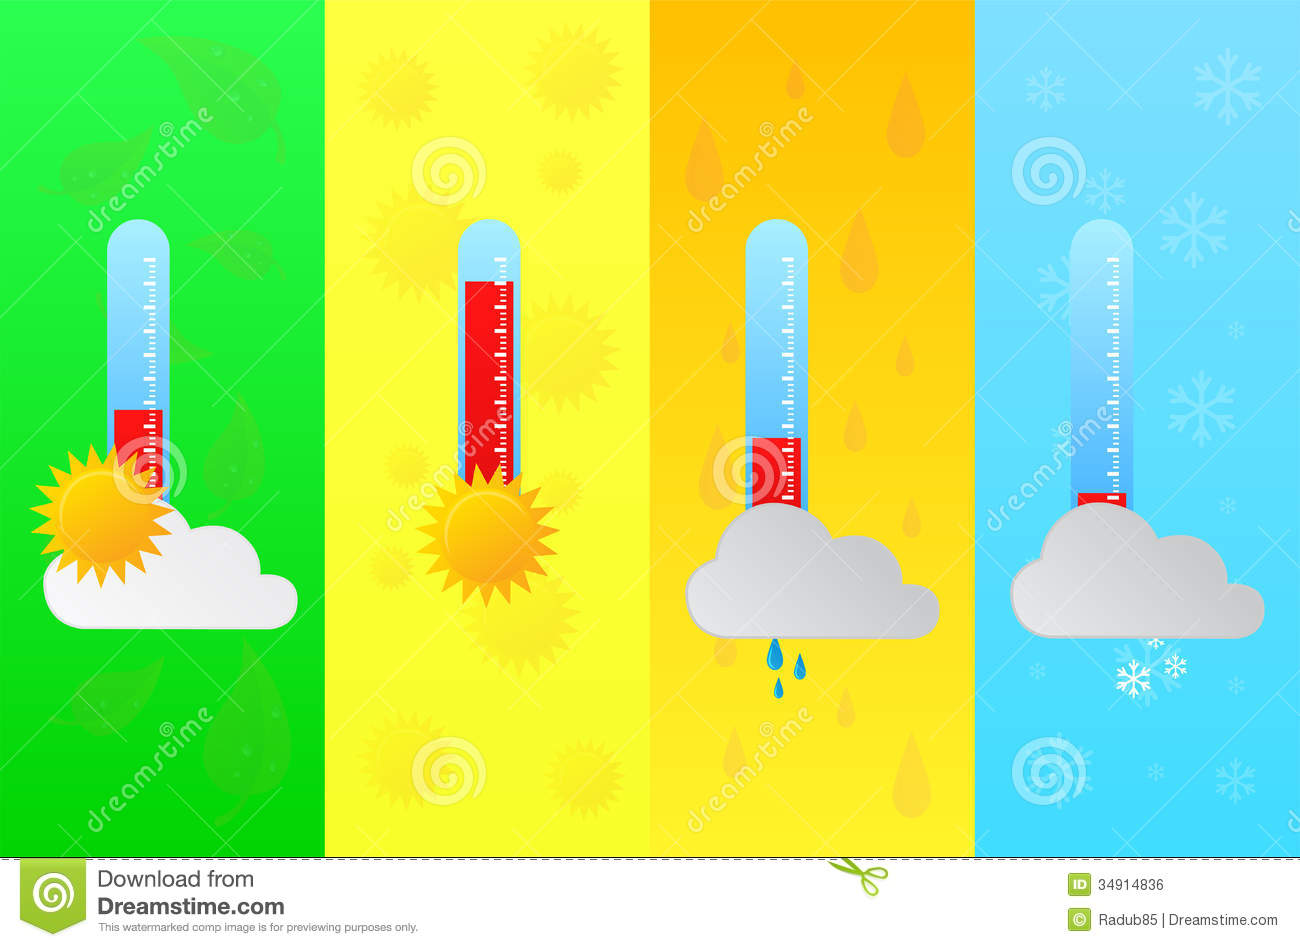 Temperature clip art library. Clipart thermometer spring